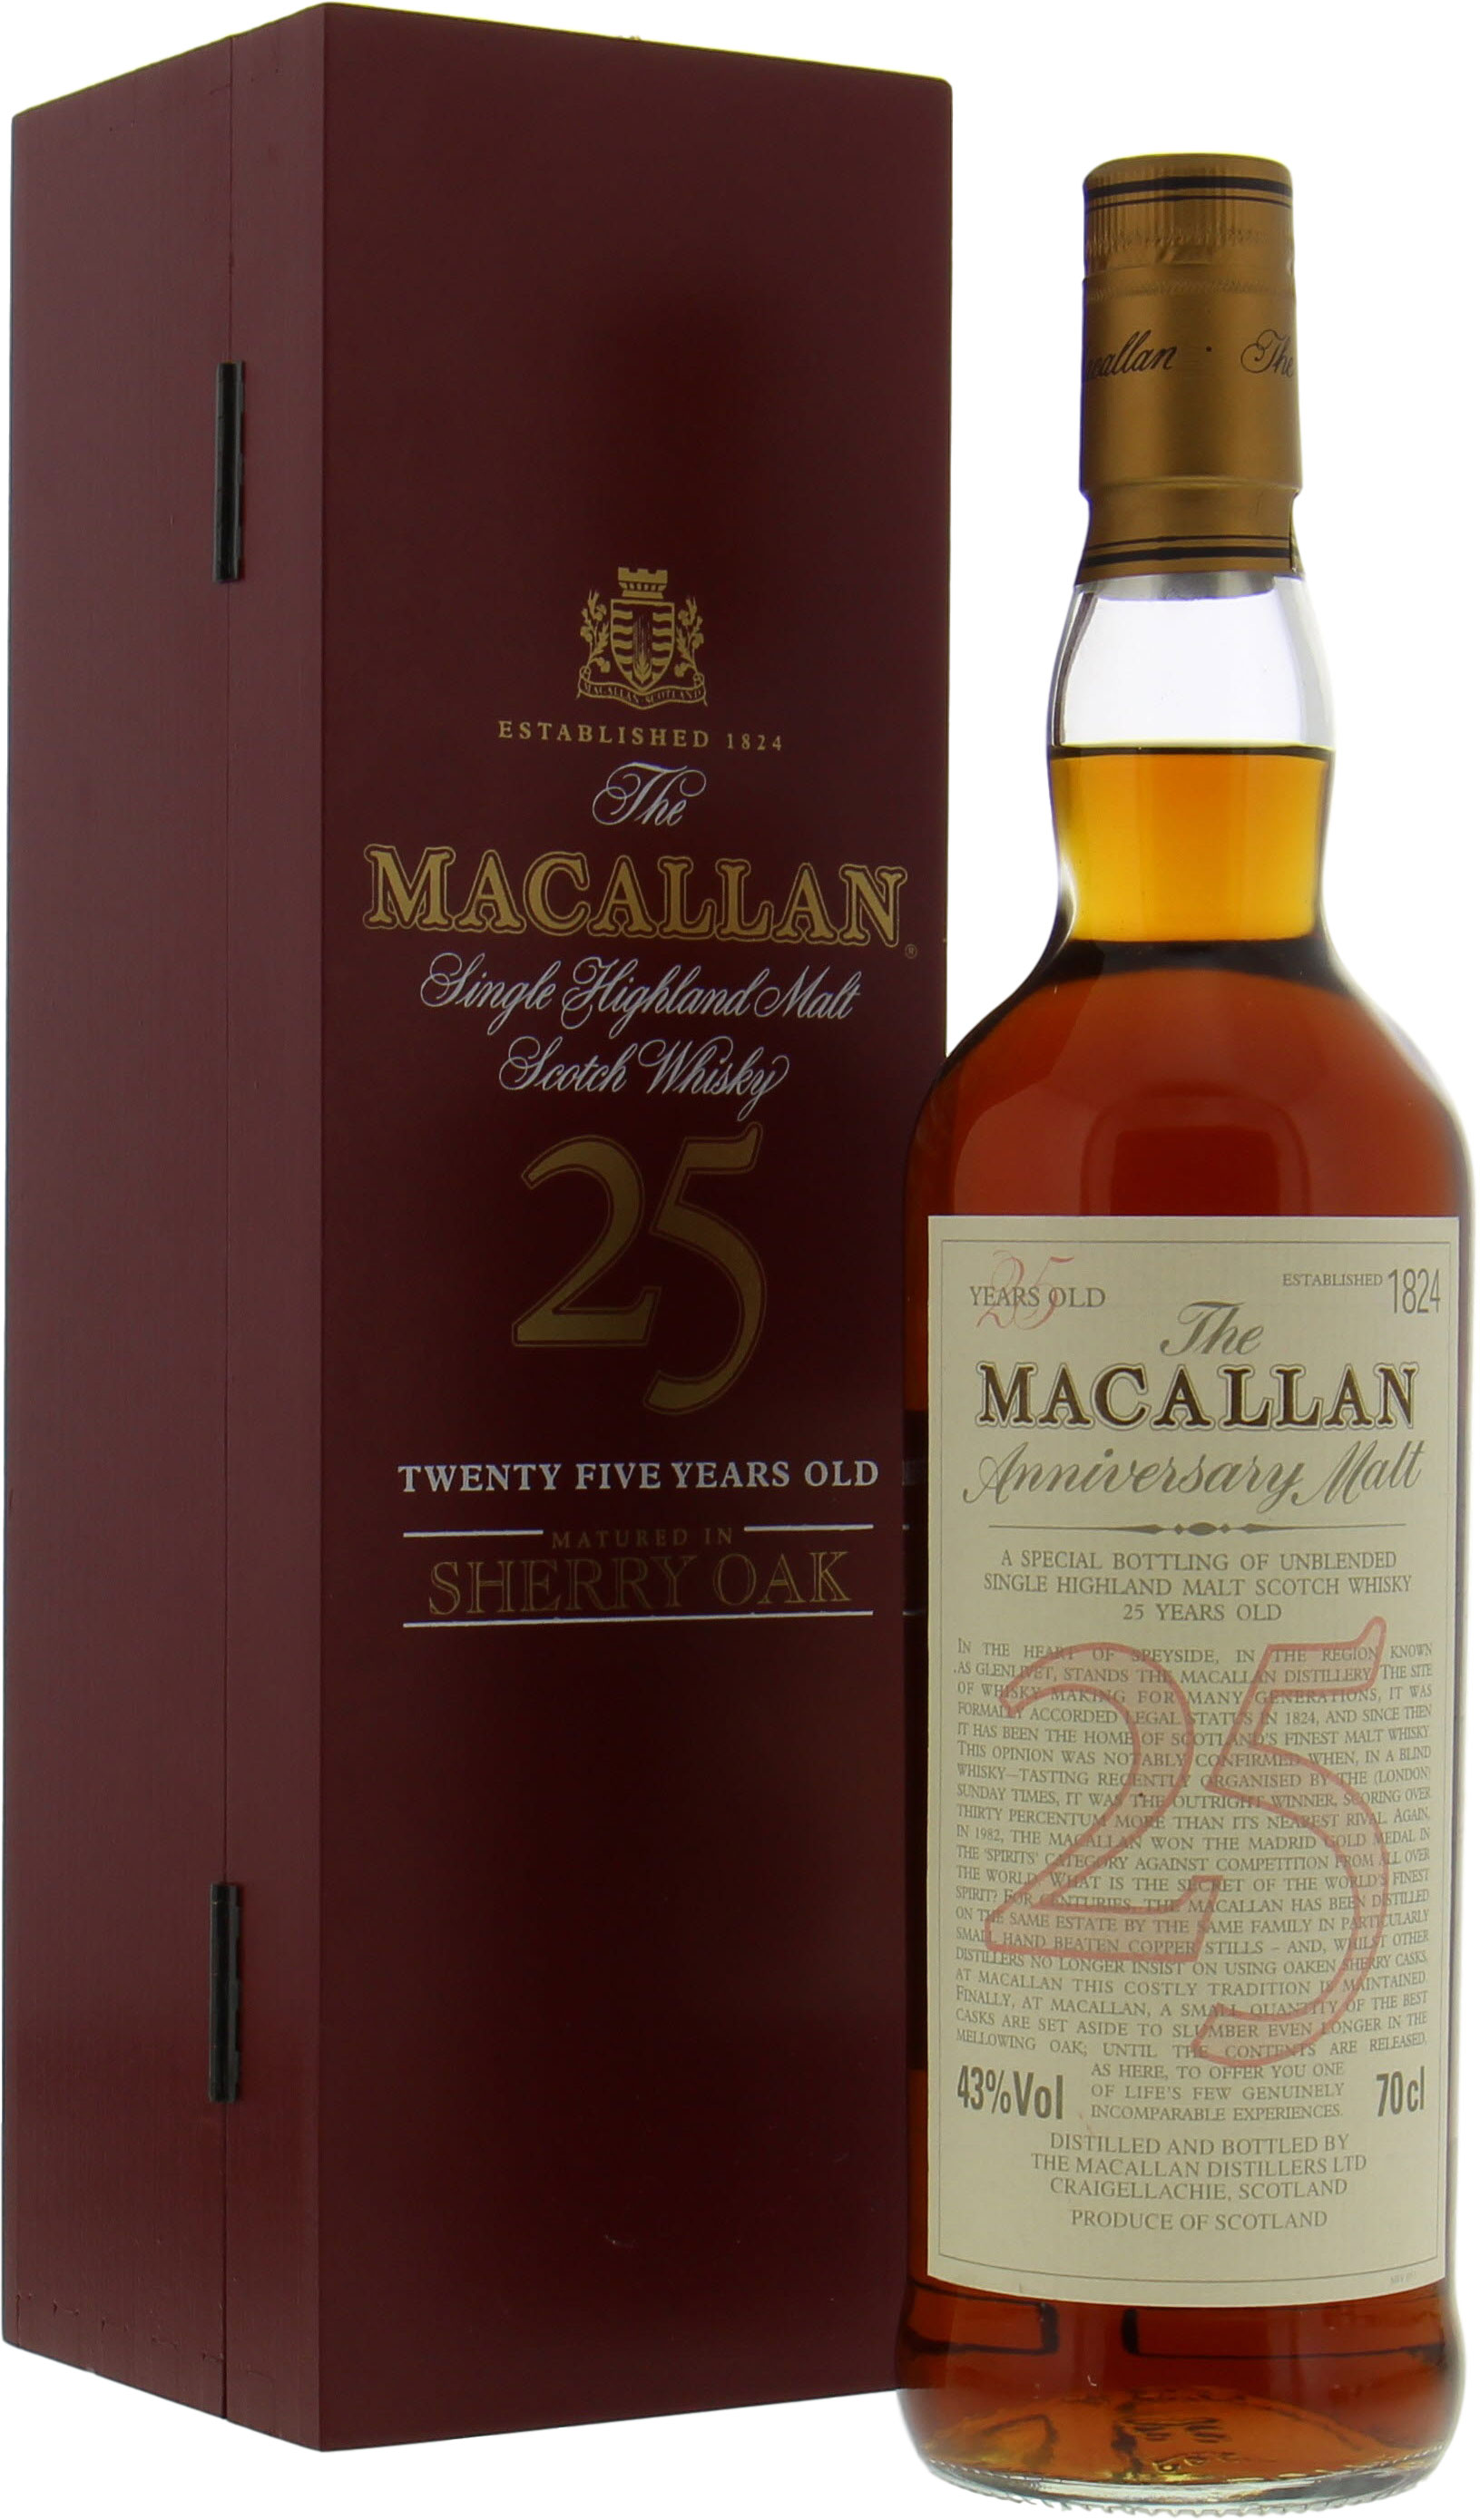 Macallan - 25 years old Anniversary Malt Red Box 43% NV